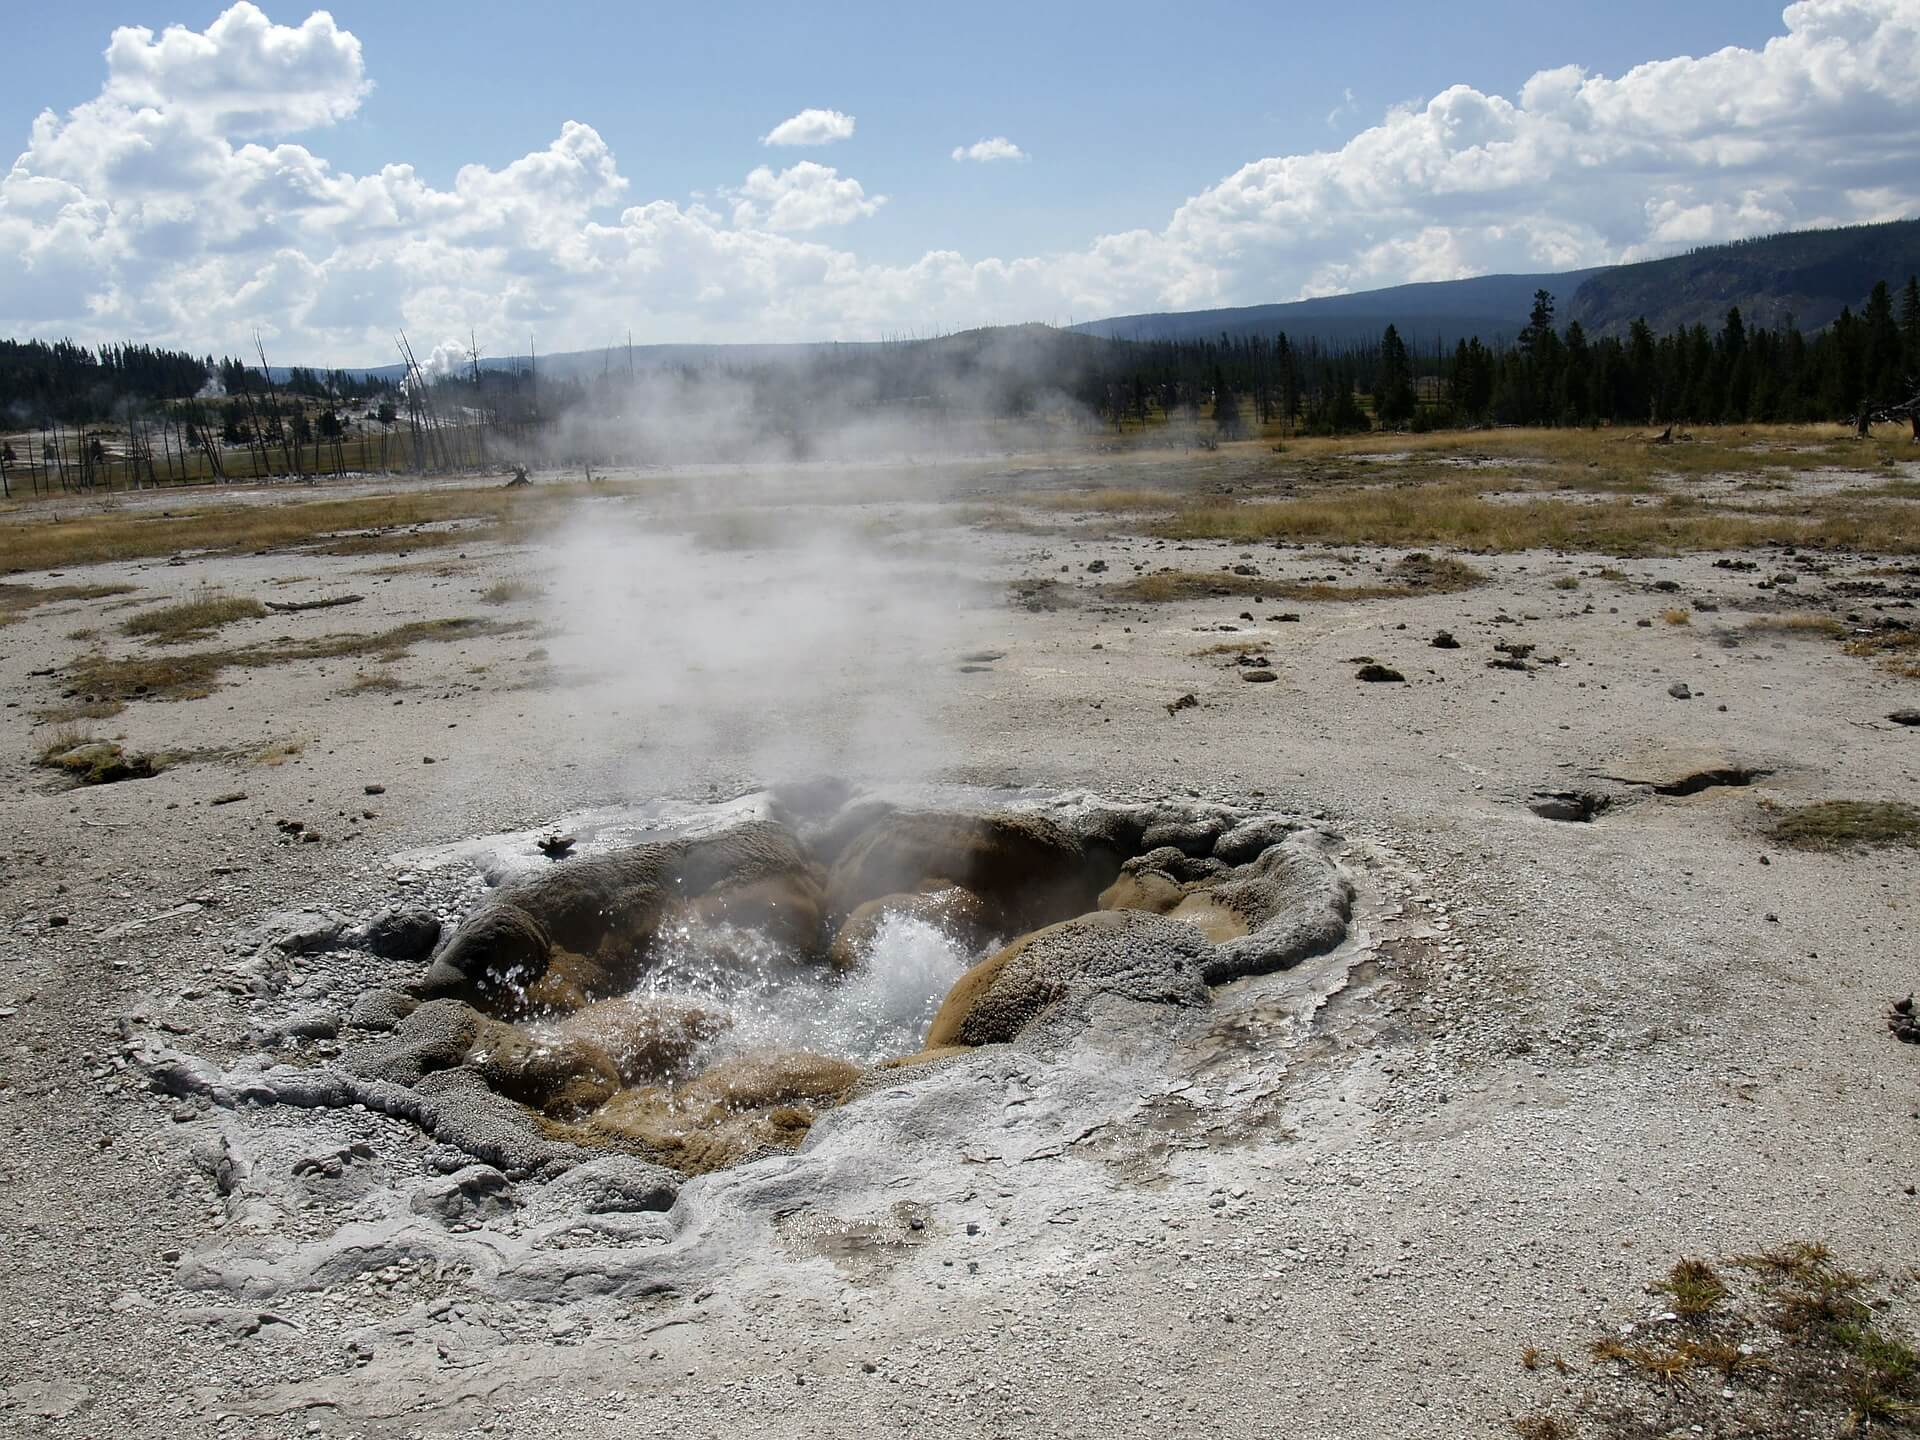 yellowstone-national-park-215196_1920